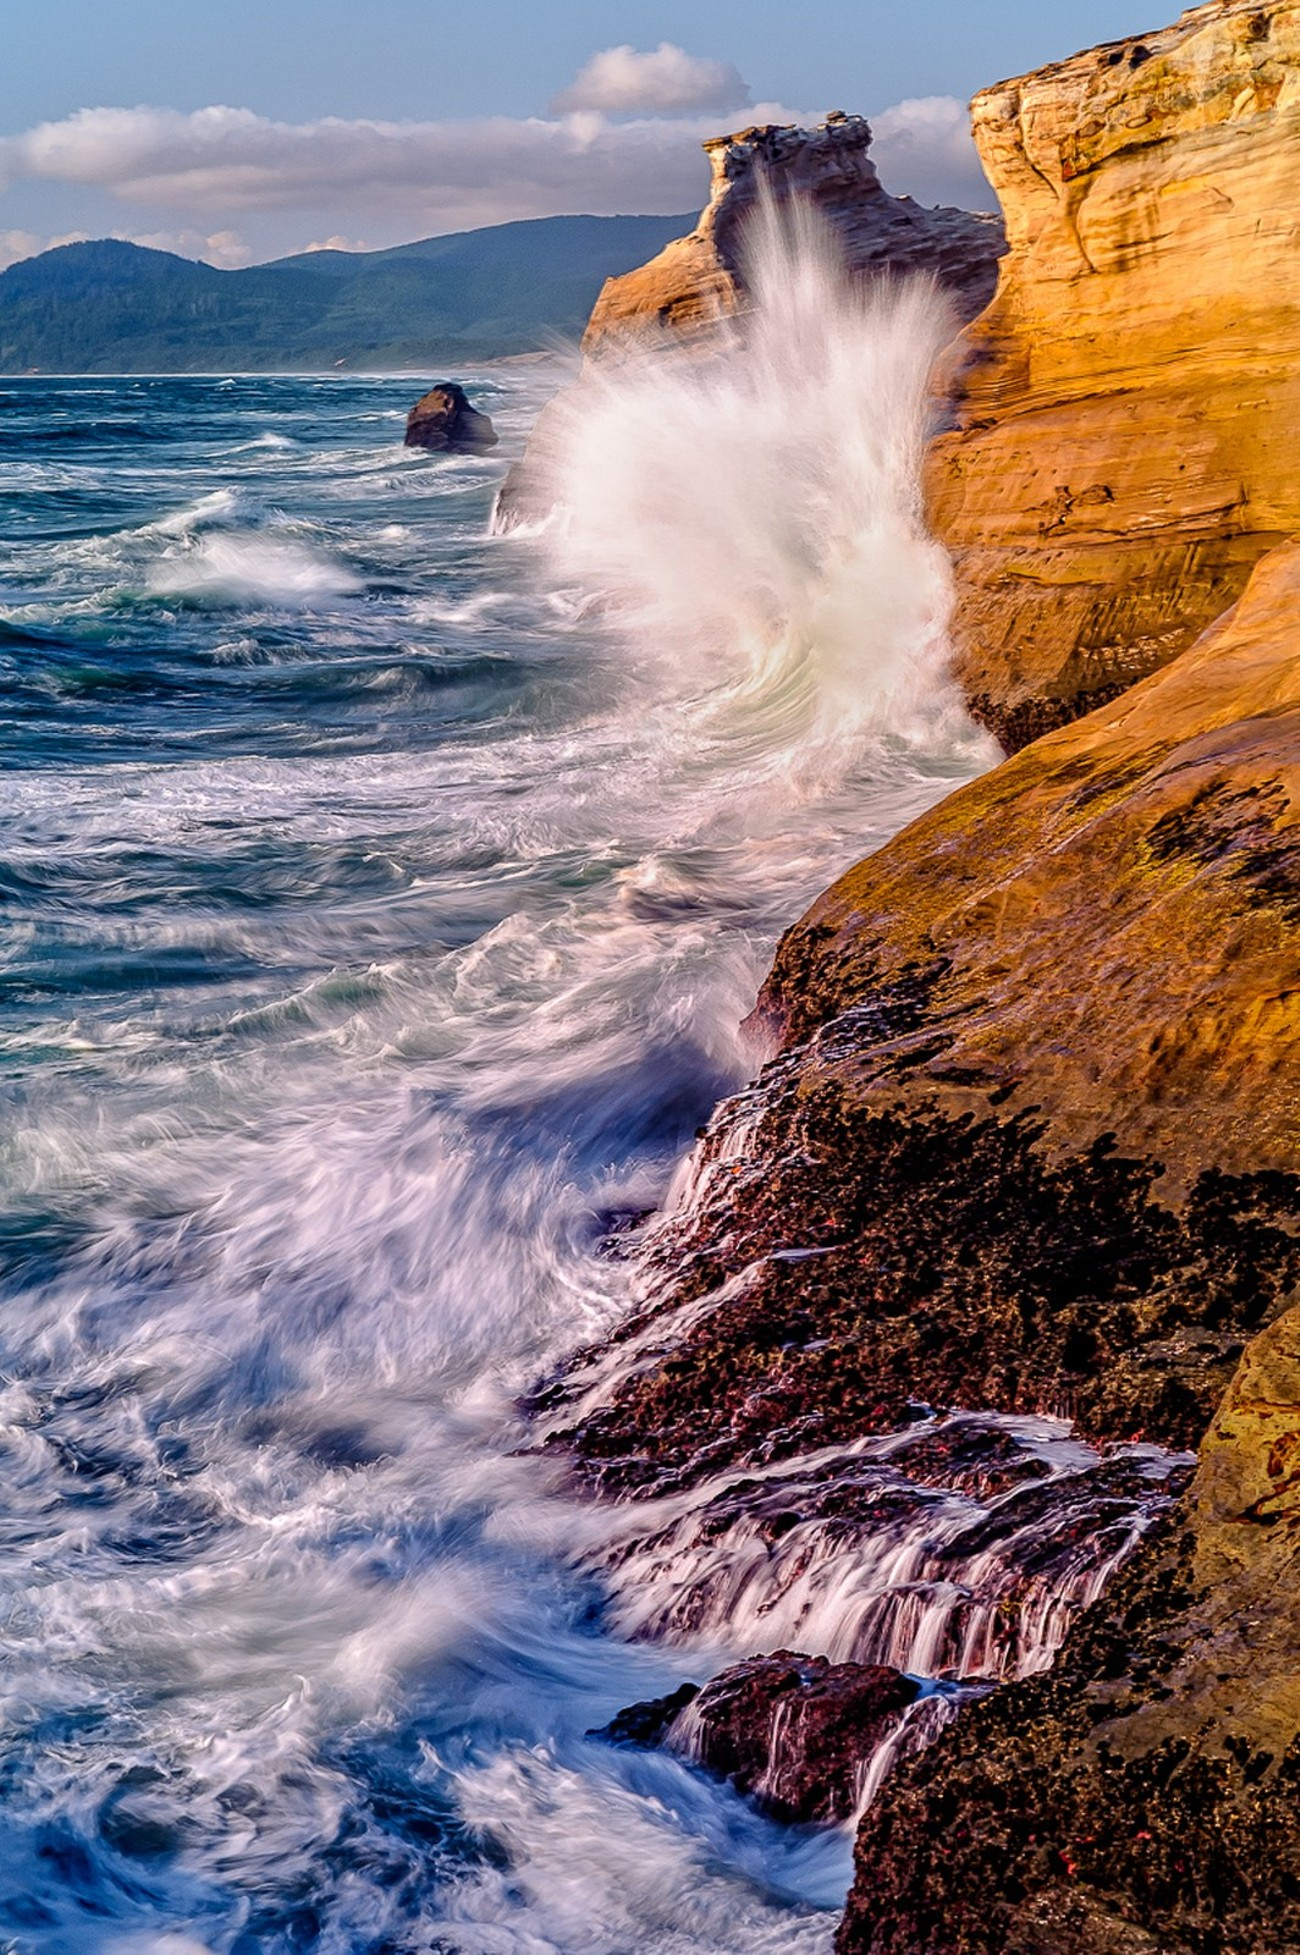 This image was captured about 45 minutes before sunset at Cape Kiwanda near Pacific City on the Oregon northern Coast. It was captured using a slow shutter, a Singh Ray graduated neutral density filter, and a tripod with mirror up and a shutter release cable. Over 170 photos were taken in this series in order to capture 7 of waves crashing at the desired height. Nikon D700, 24-120 lens, ISO 100, 78mm, .4 sec, f/14, manual exposure, matrix metered.